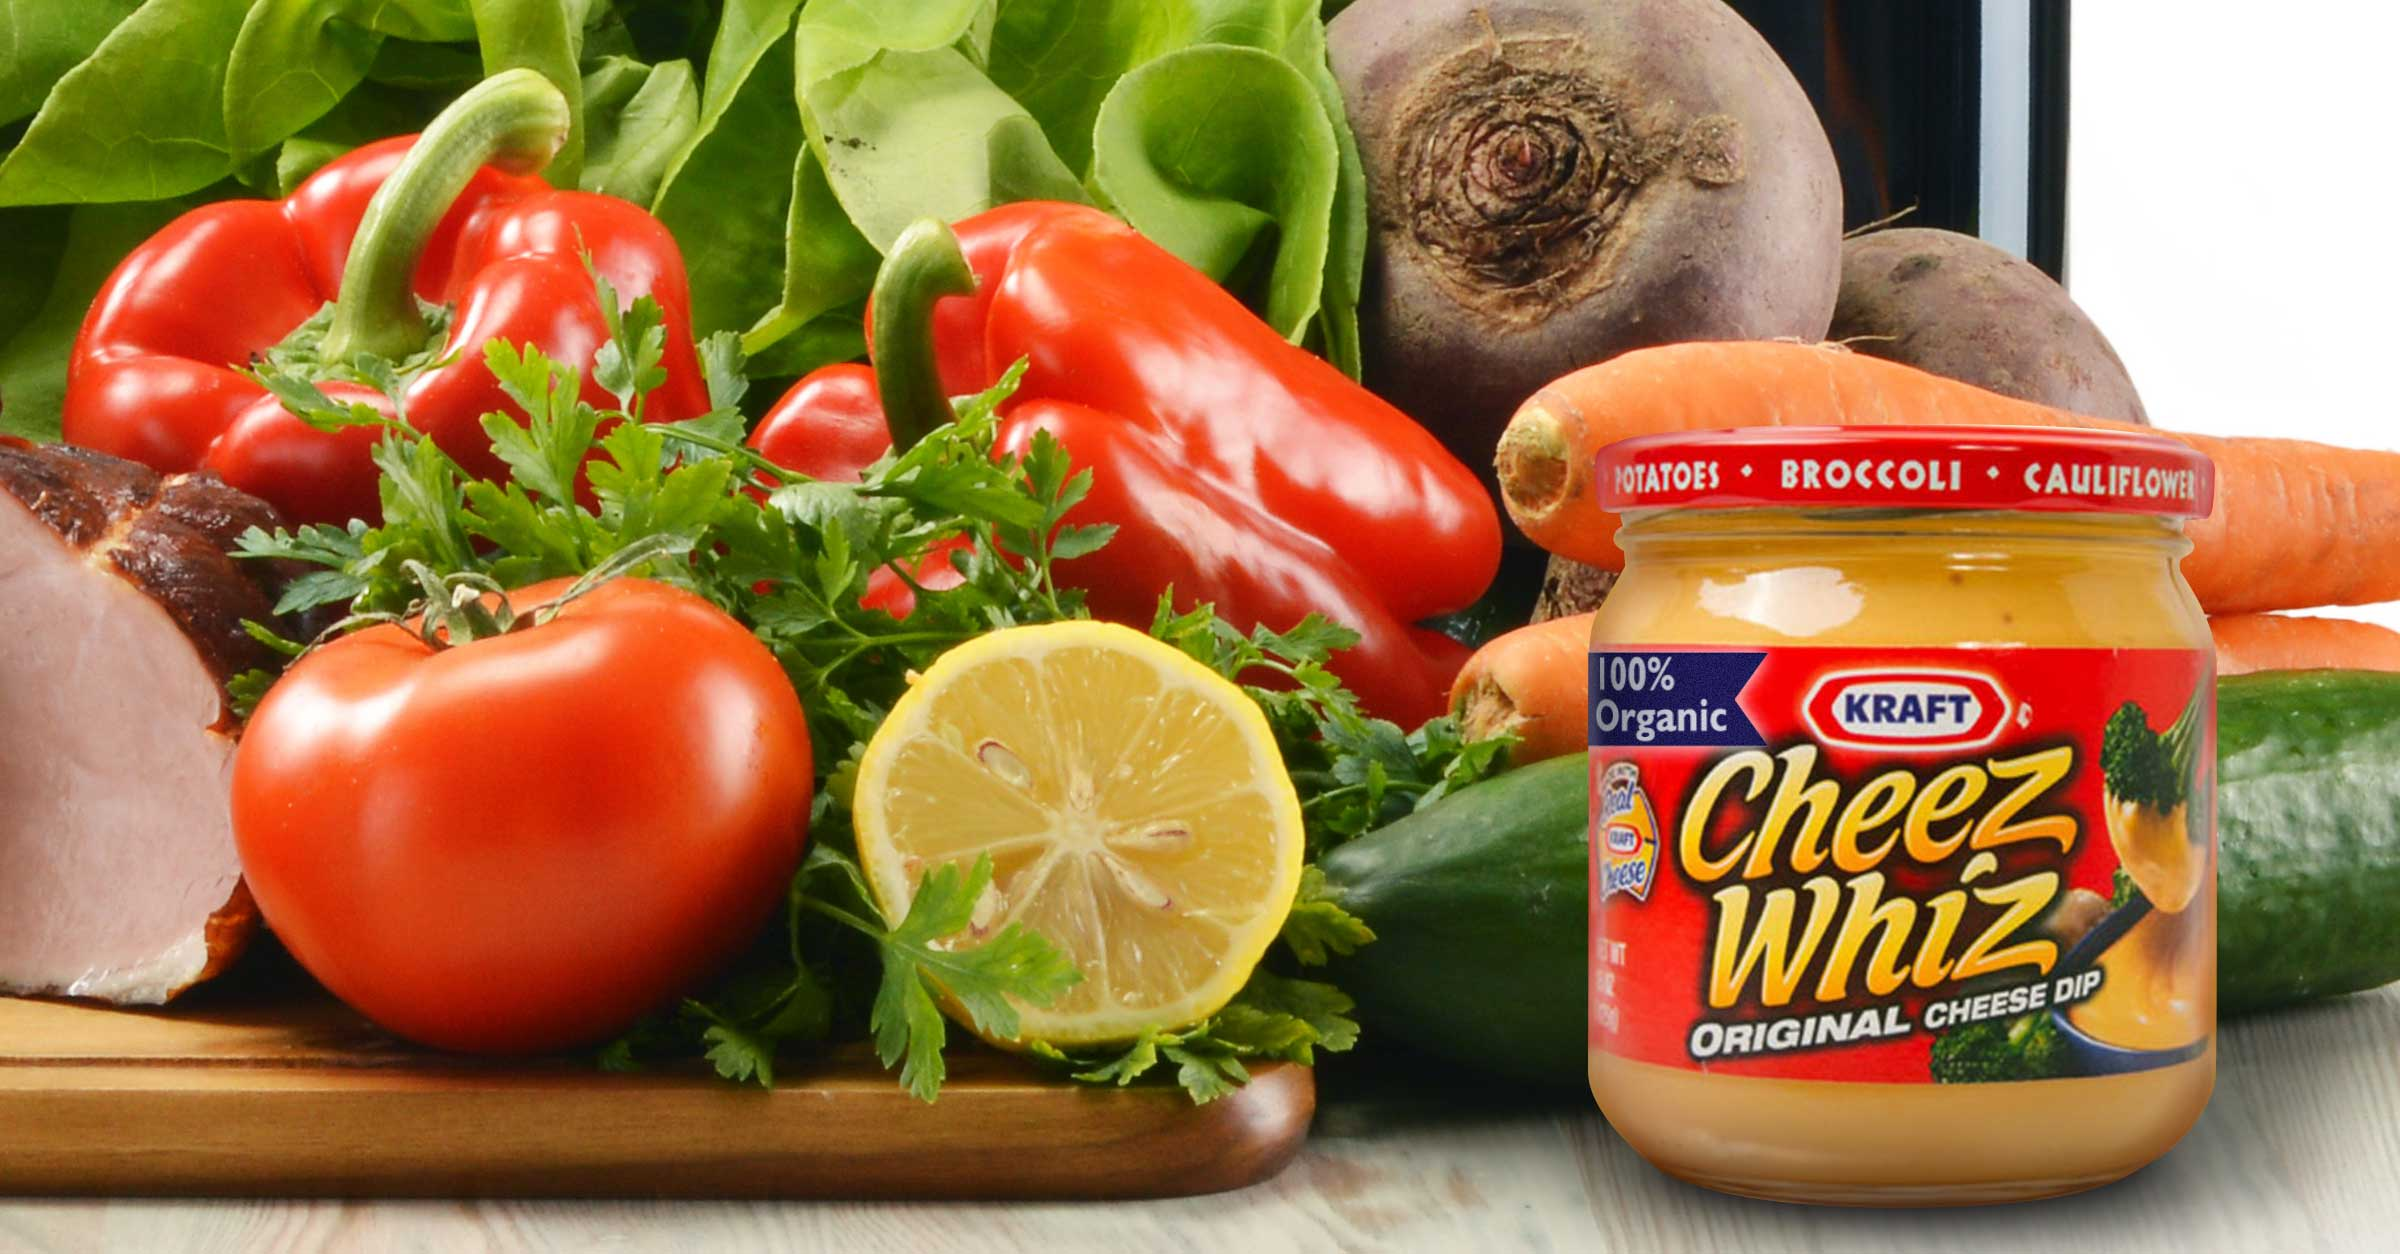 Kraft Cheez Whiz Goes 100 Organic 12 Tomatoes